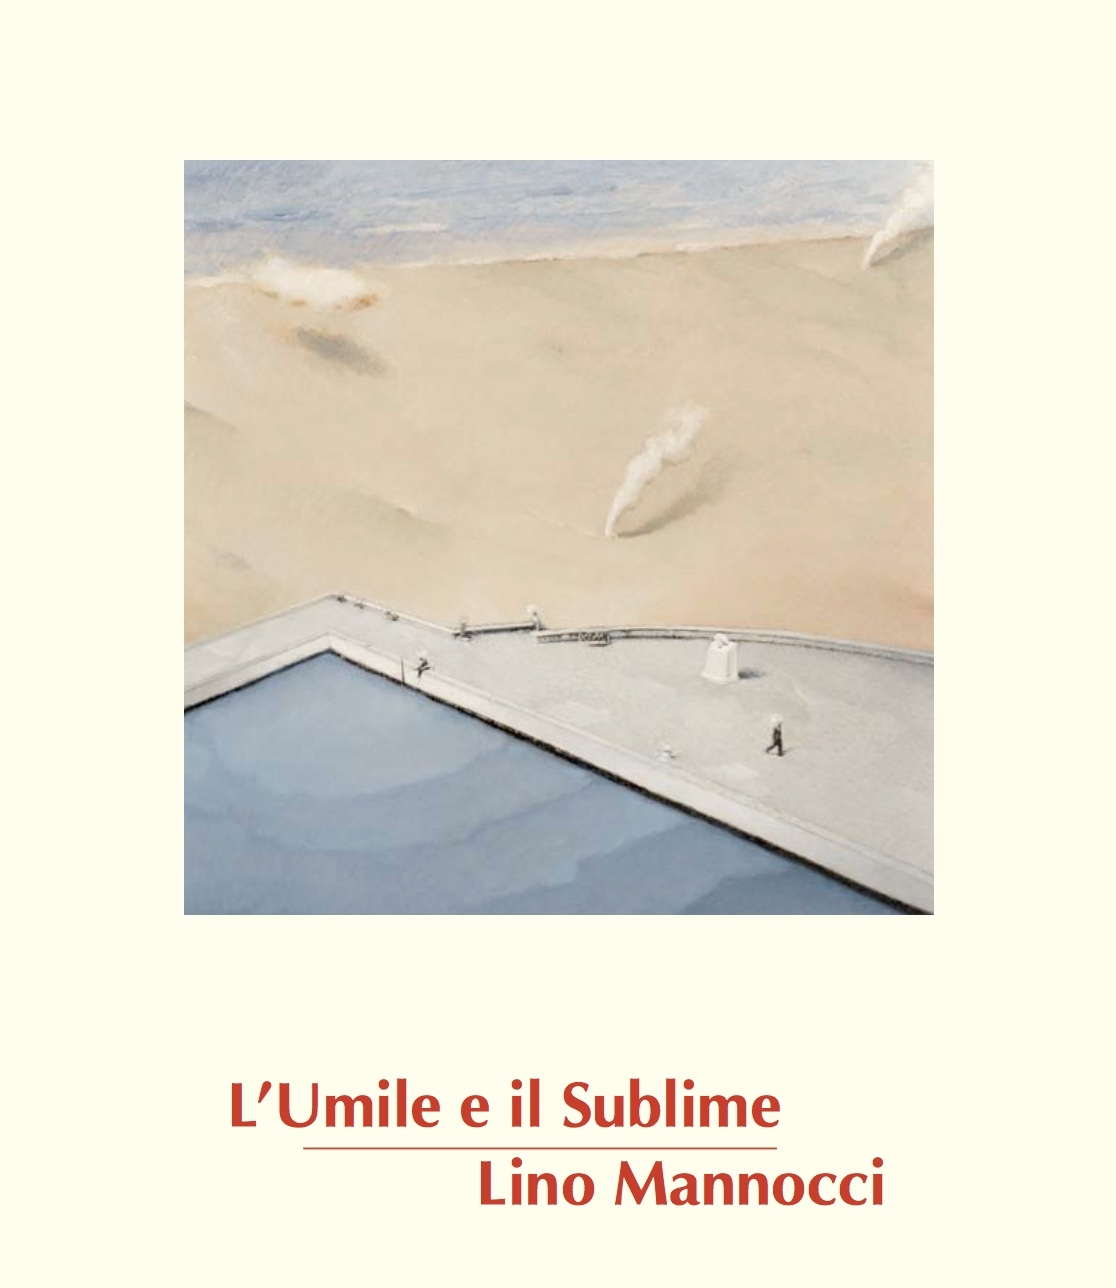 Copy of L'Umile e il Sublime